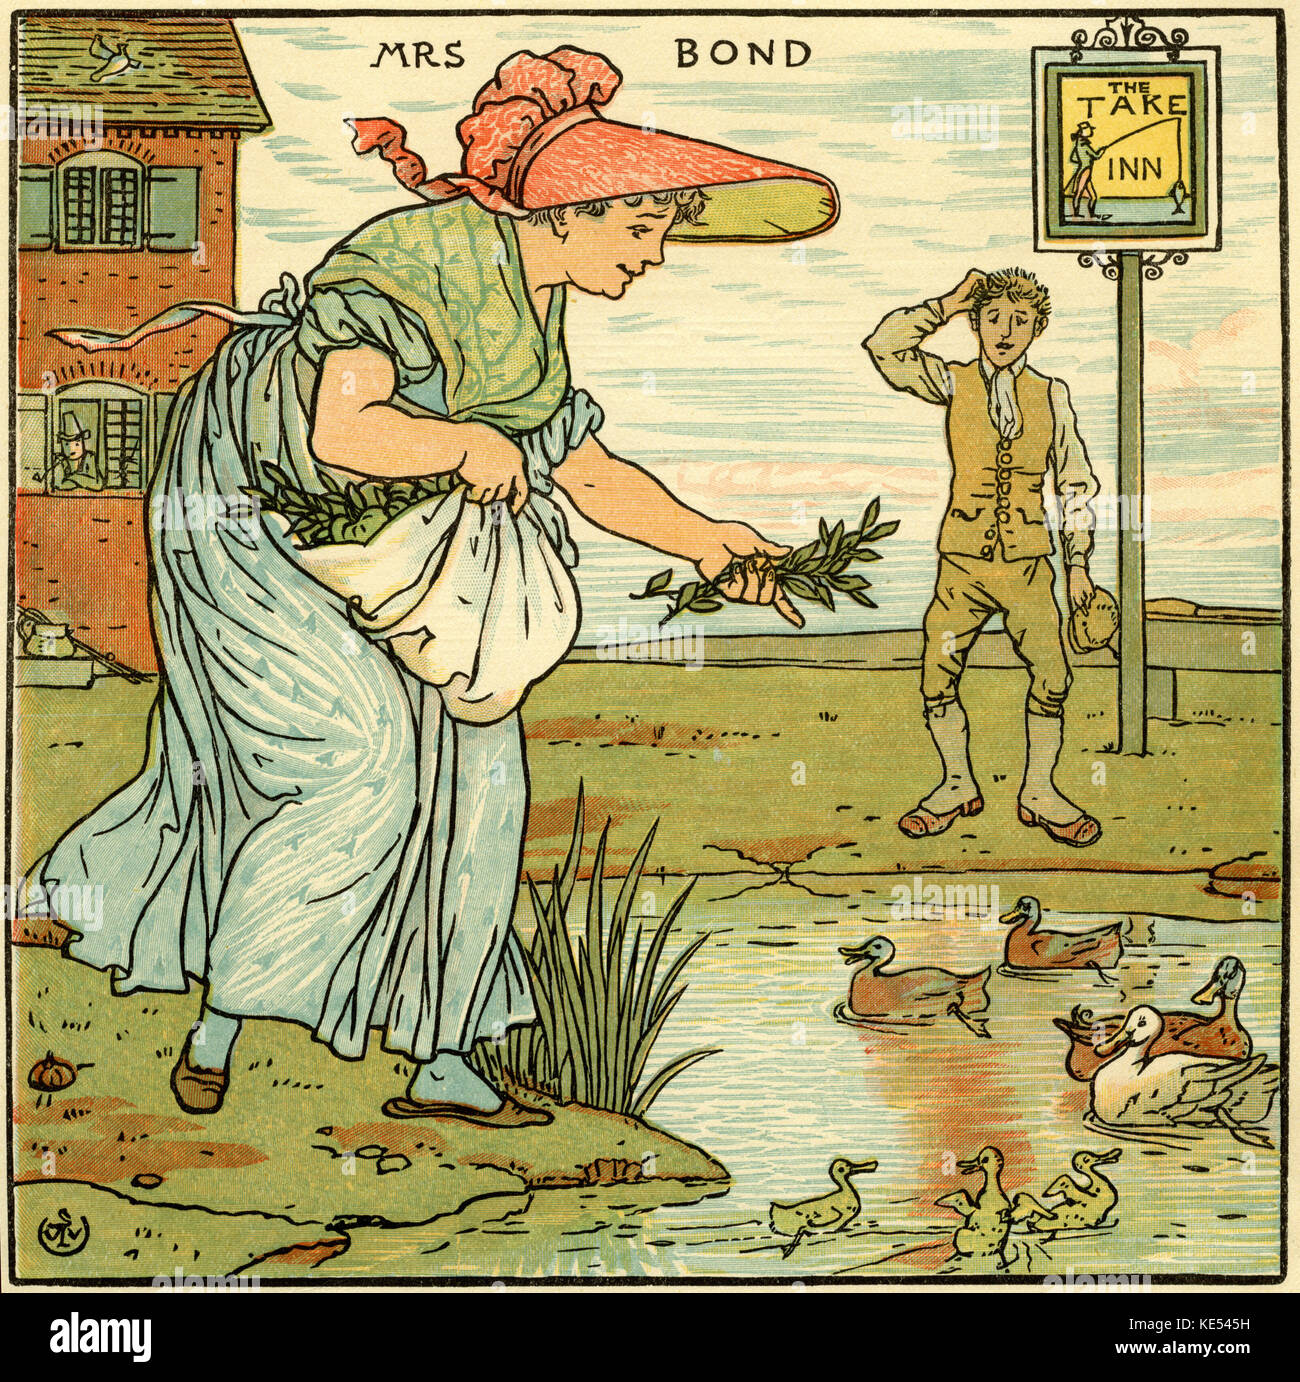 Mrs Bond, nursery rhyme, illustration (1877) by Walter Crane. English artist of Arts and Crafts movement, 15 August - Stock Image